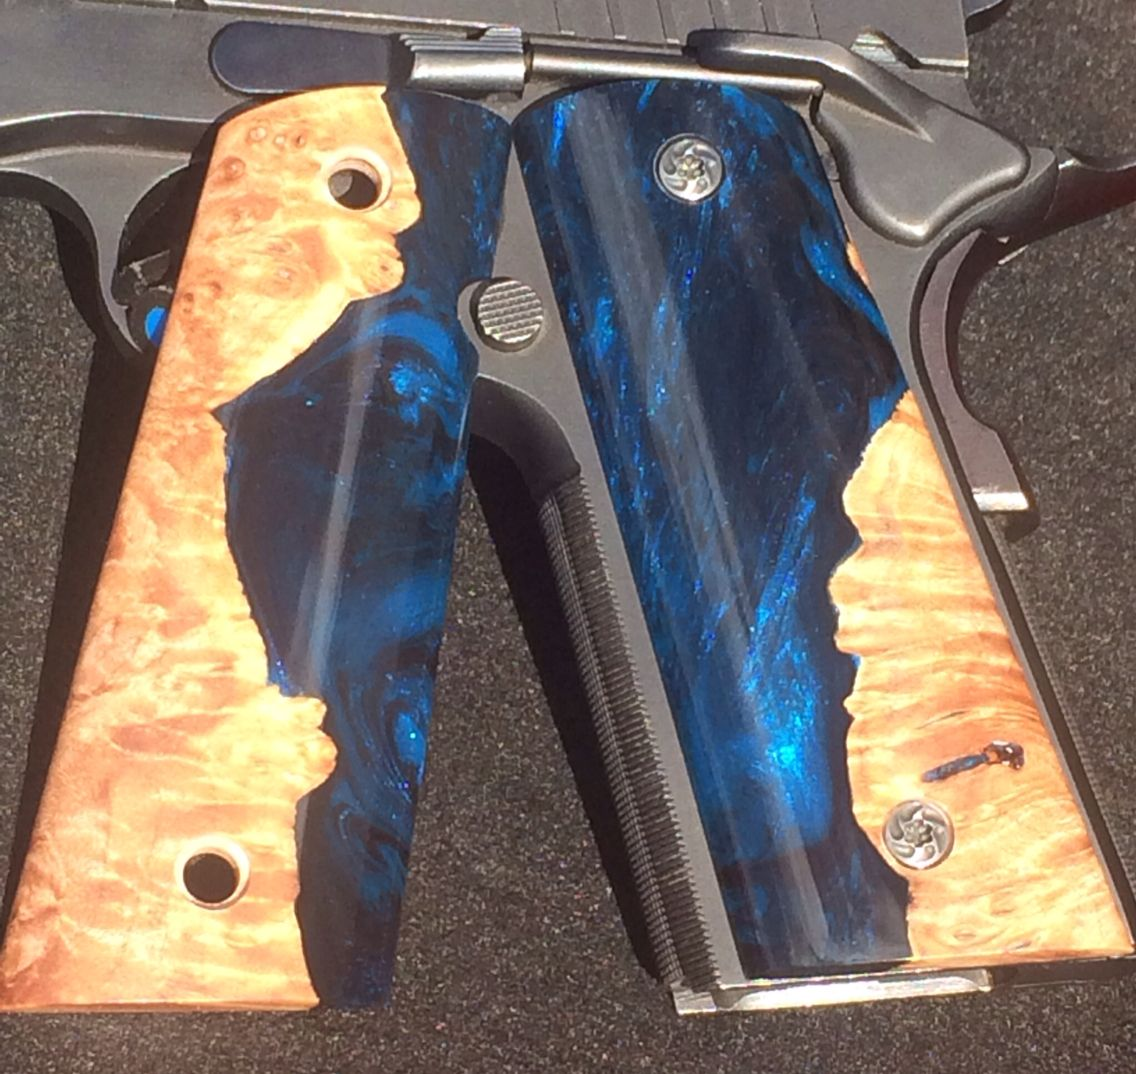 Custom 1911 grips  Made from maple burl and resin  Color is